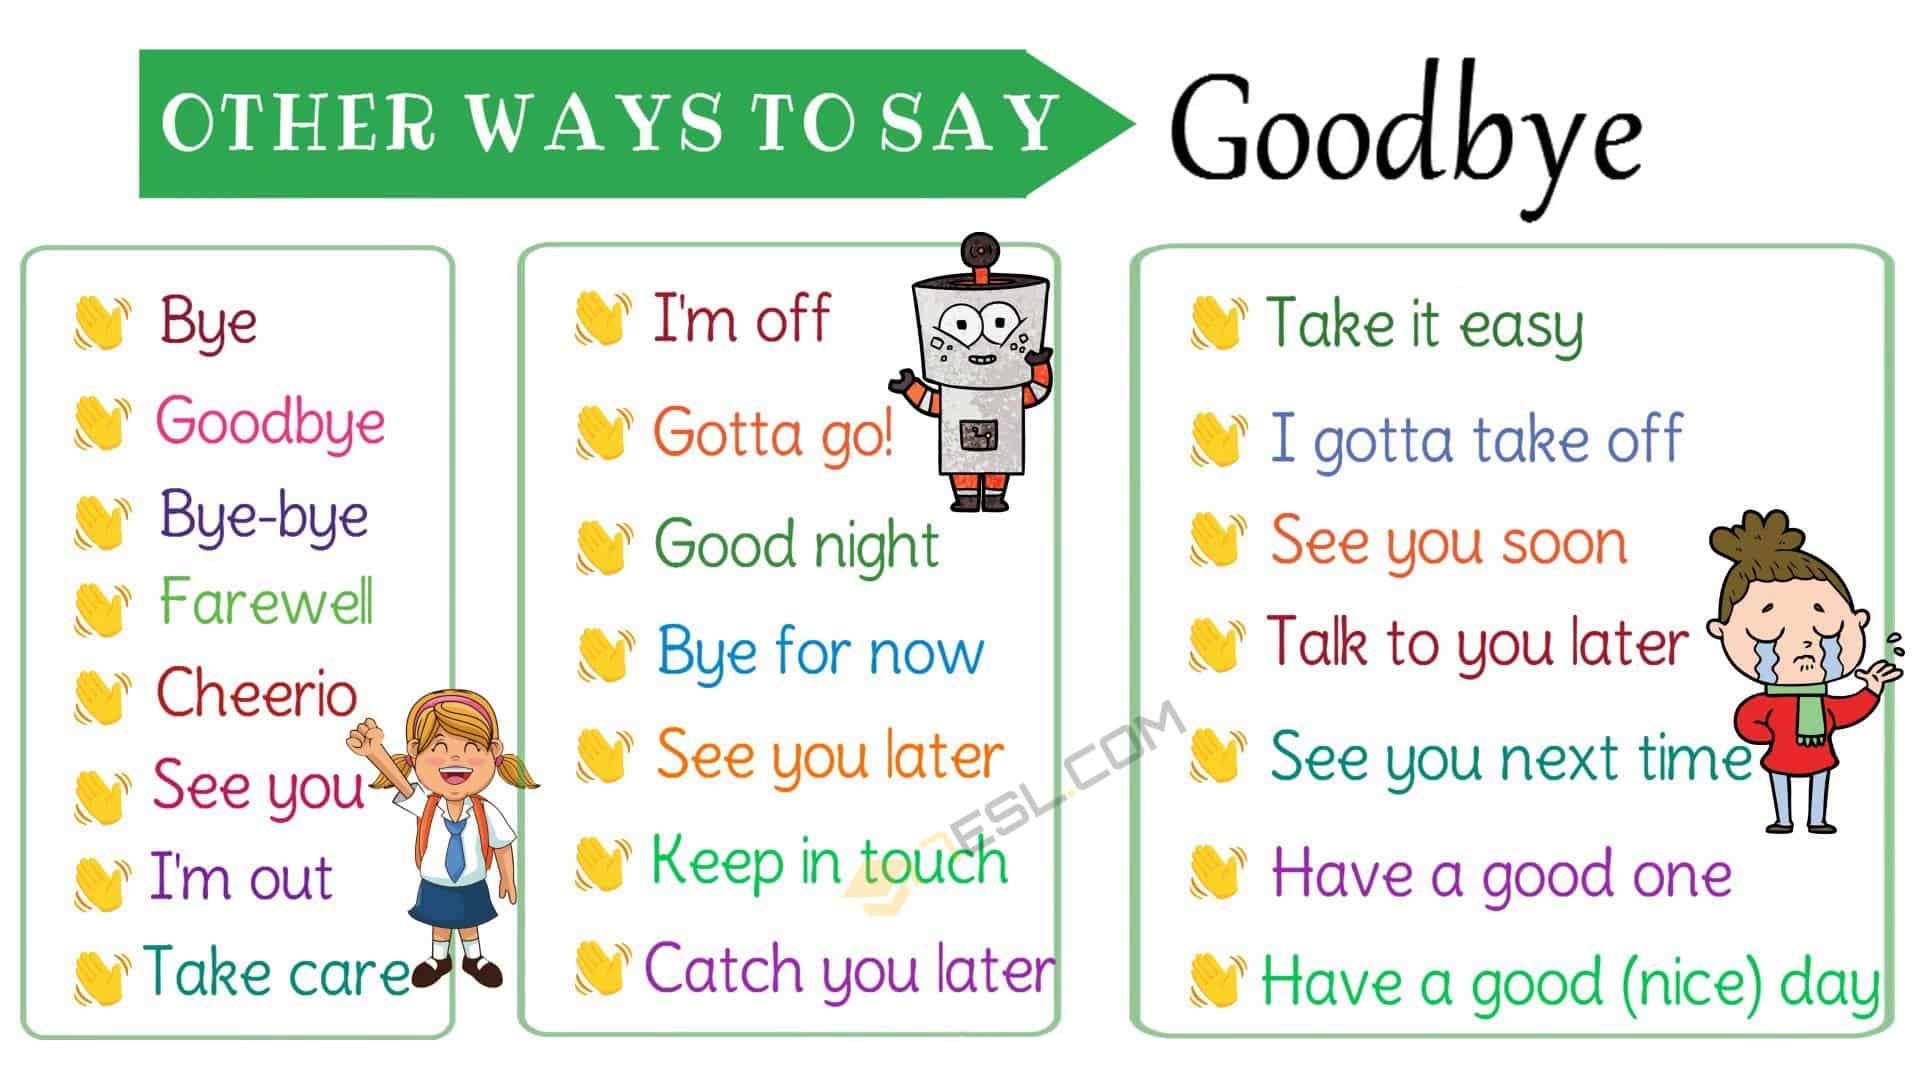 Ways to Say Goodbye in English | Goodbye Synonyms Image